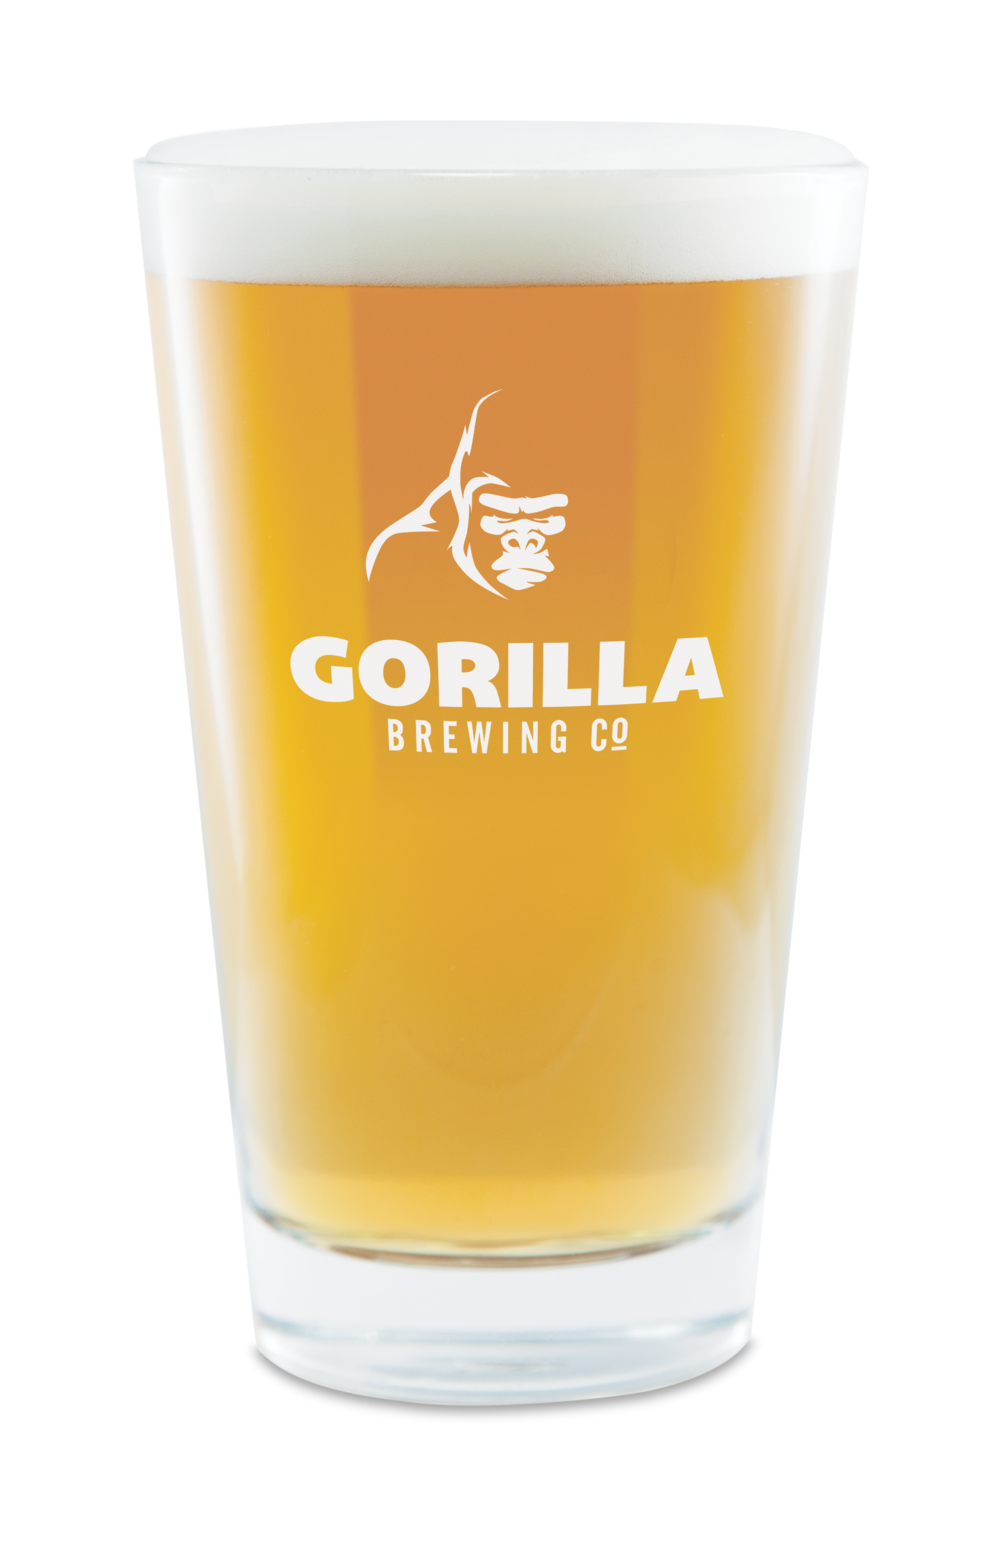 GORILLA BLONDE ALE - 고릴라 블론드 에일abv 5.2% ibu 10.3LIGHT AND REFRESHING WITH A CHEEKY TOUCH OF CARAMEL.Gorilla Blonde is a well-rounded, smooth beer, with a slightly sweet malty character. Ideal for the customer making the transition from mass produced beer to craft beer.약간의 캐러멜의 단맛과함께 상쾌하며 가벼운 에일.고릴라 블론드는 균형이 잘 잡혀있고, 부드러우며 맥아에서 오는 약간의 달콤함을 느낄 수 있습니다. 보통의 대량 생산된 맥주에서 수제 맥주로의 취향 변화를 시작하시는 분에게 이상적인 맥주입니다.